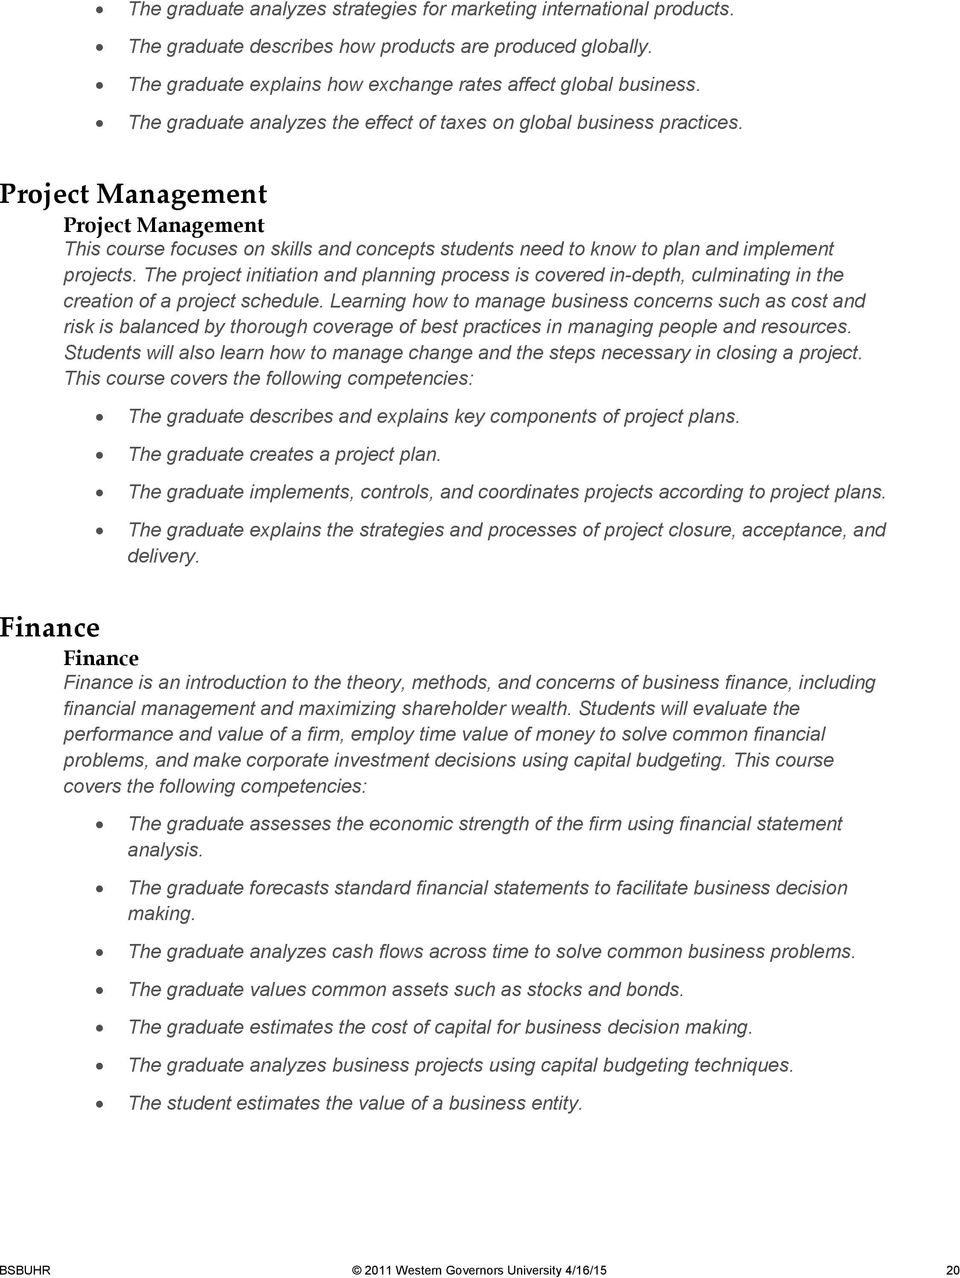 Project Management Project Management This course focuses on skills and concepts students need to know to plan and implement projects.